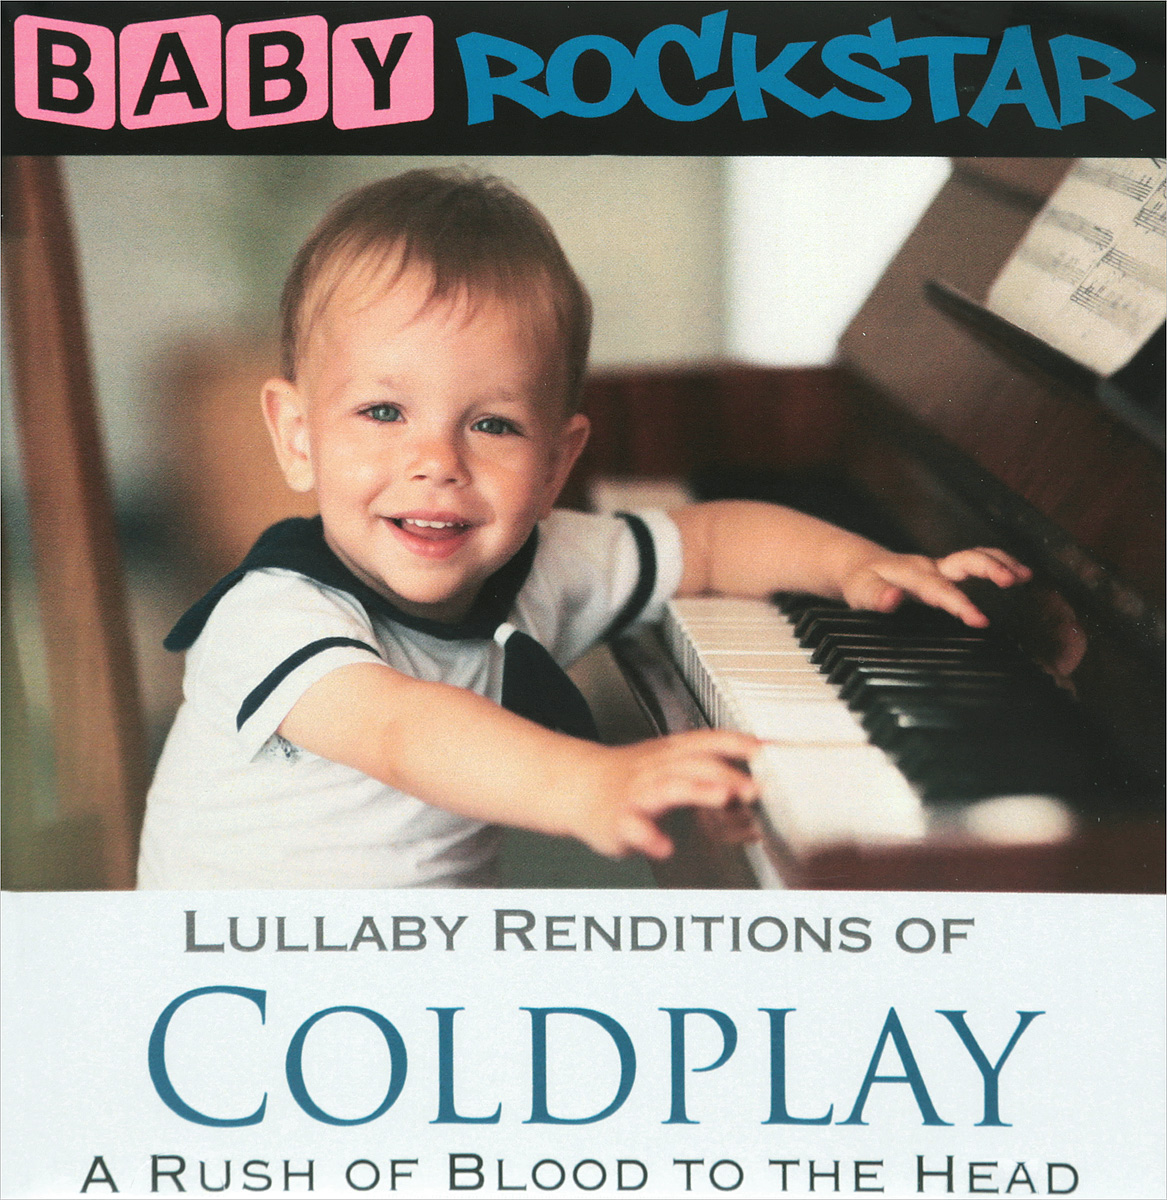 Coldplay Baby Rockstar. Lullaby Renditions Of Coldplay. A Rush Of Blood To The Head 3 inches of blood 3 inches of blood long live heavy metal